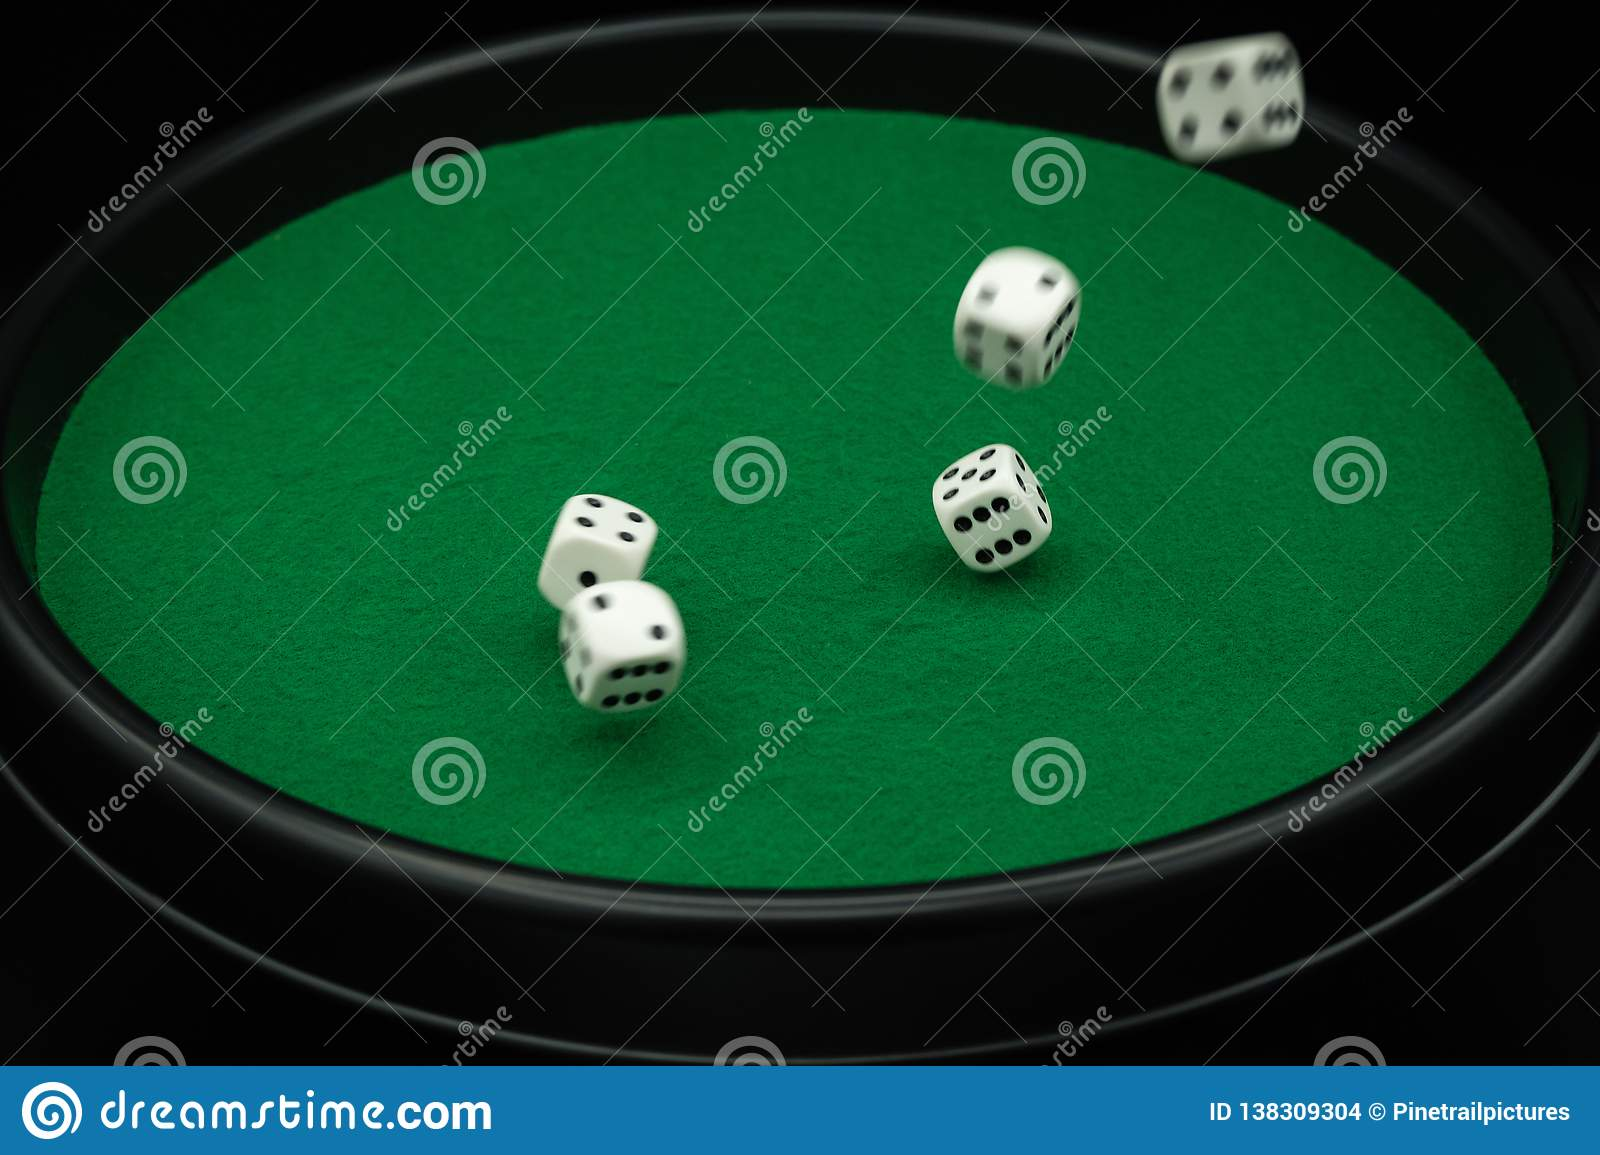 Five dice in motion on green dice board